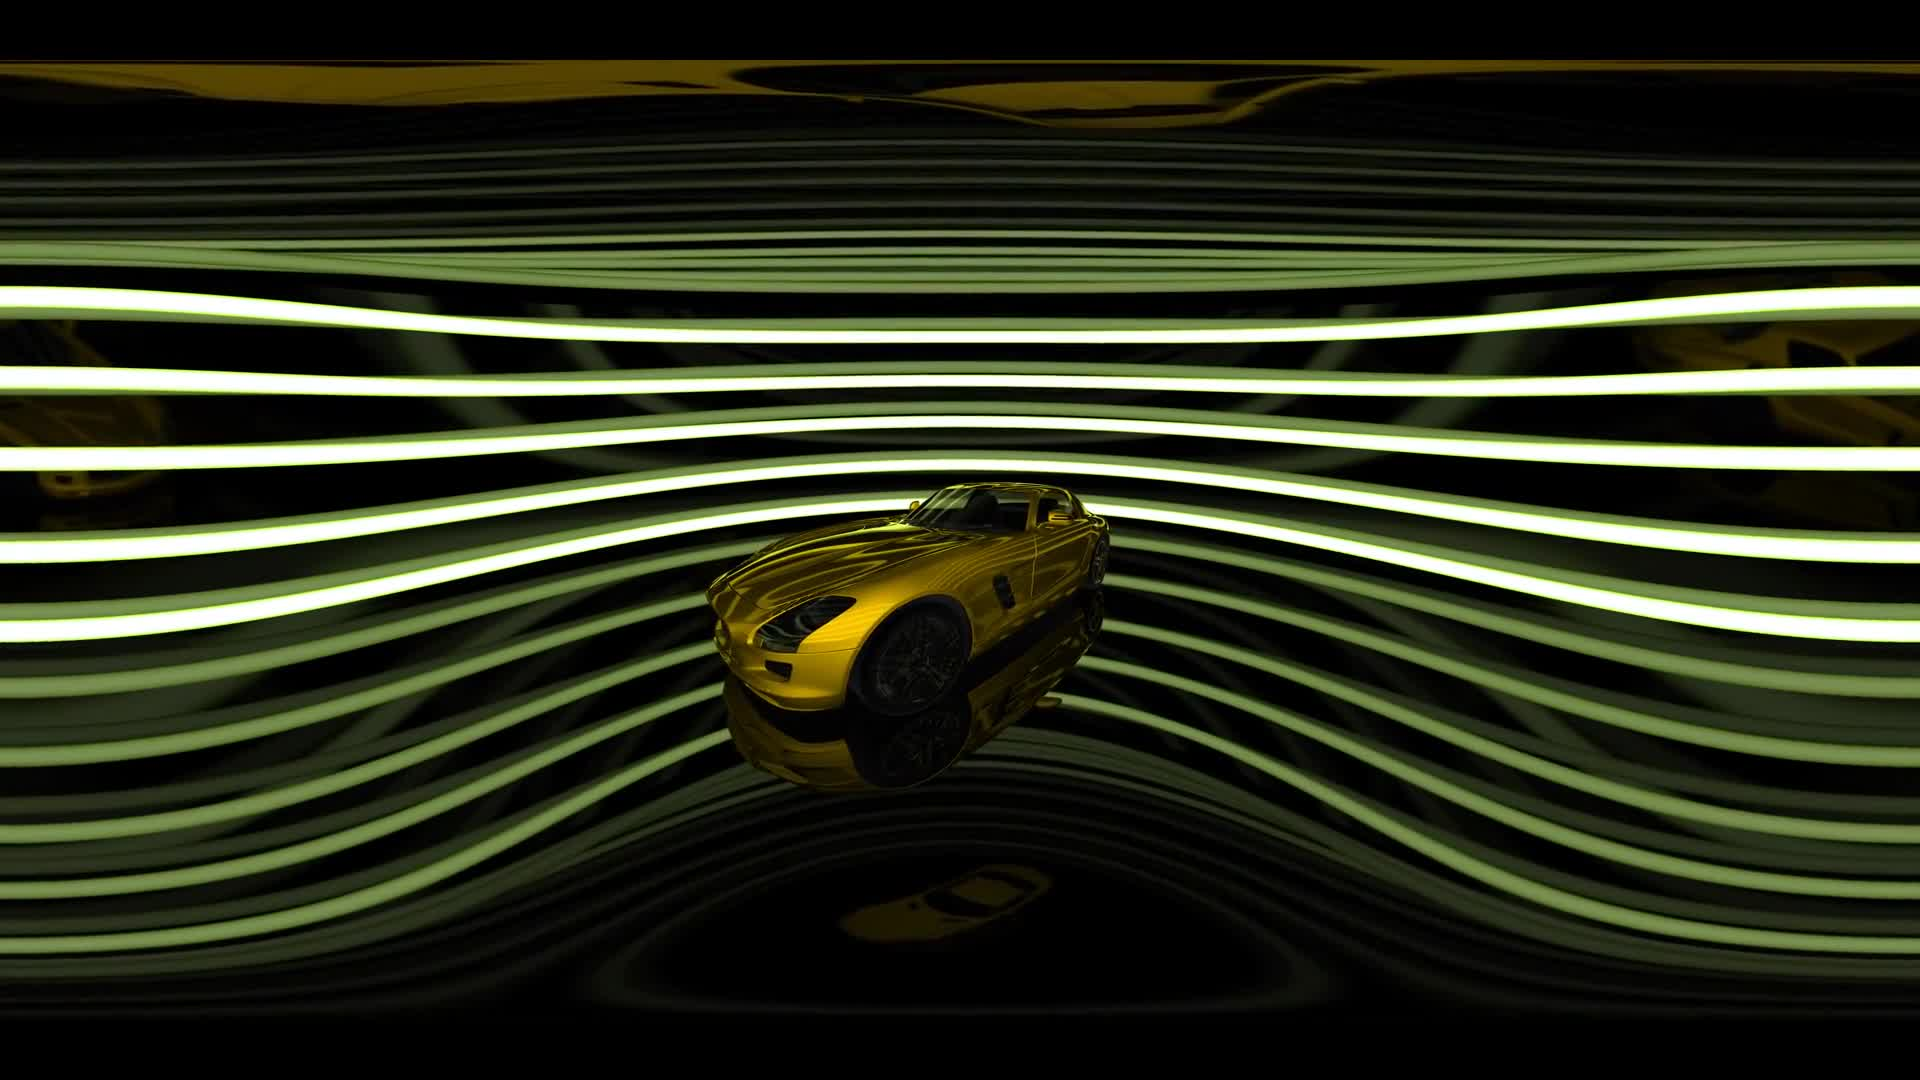 vr 360 rotate luxury sport car in virtual reality 360 degree video